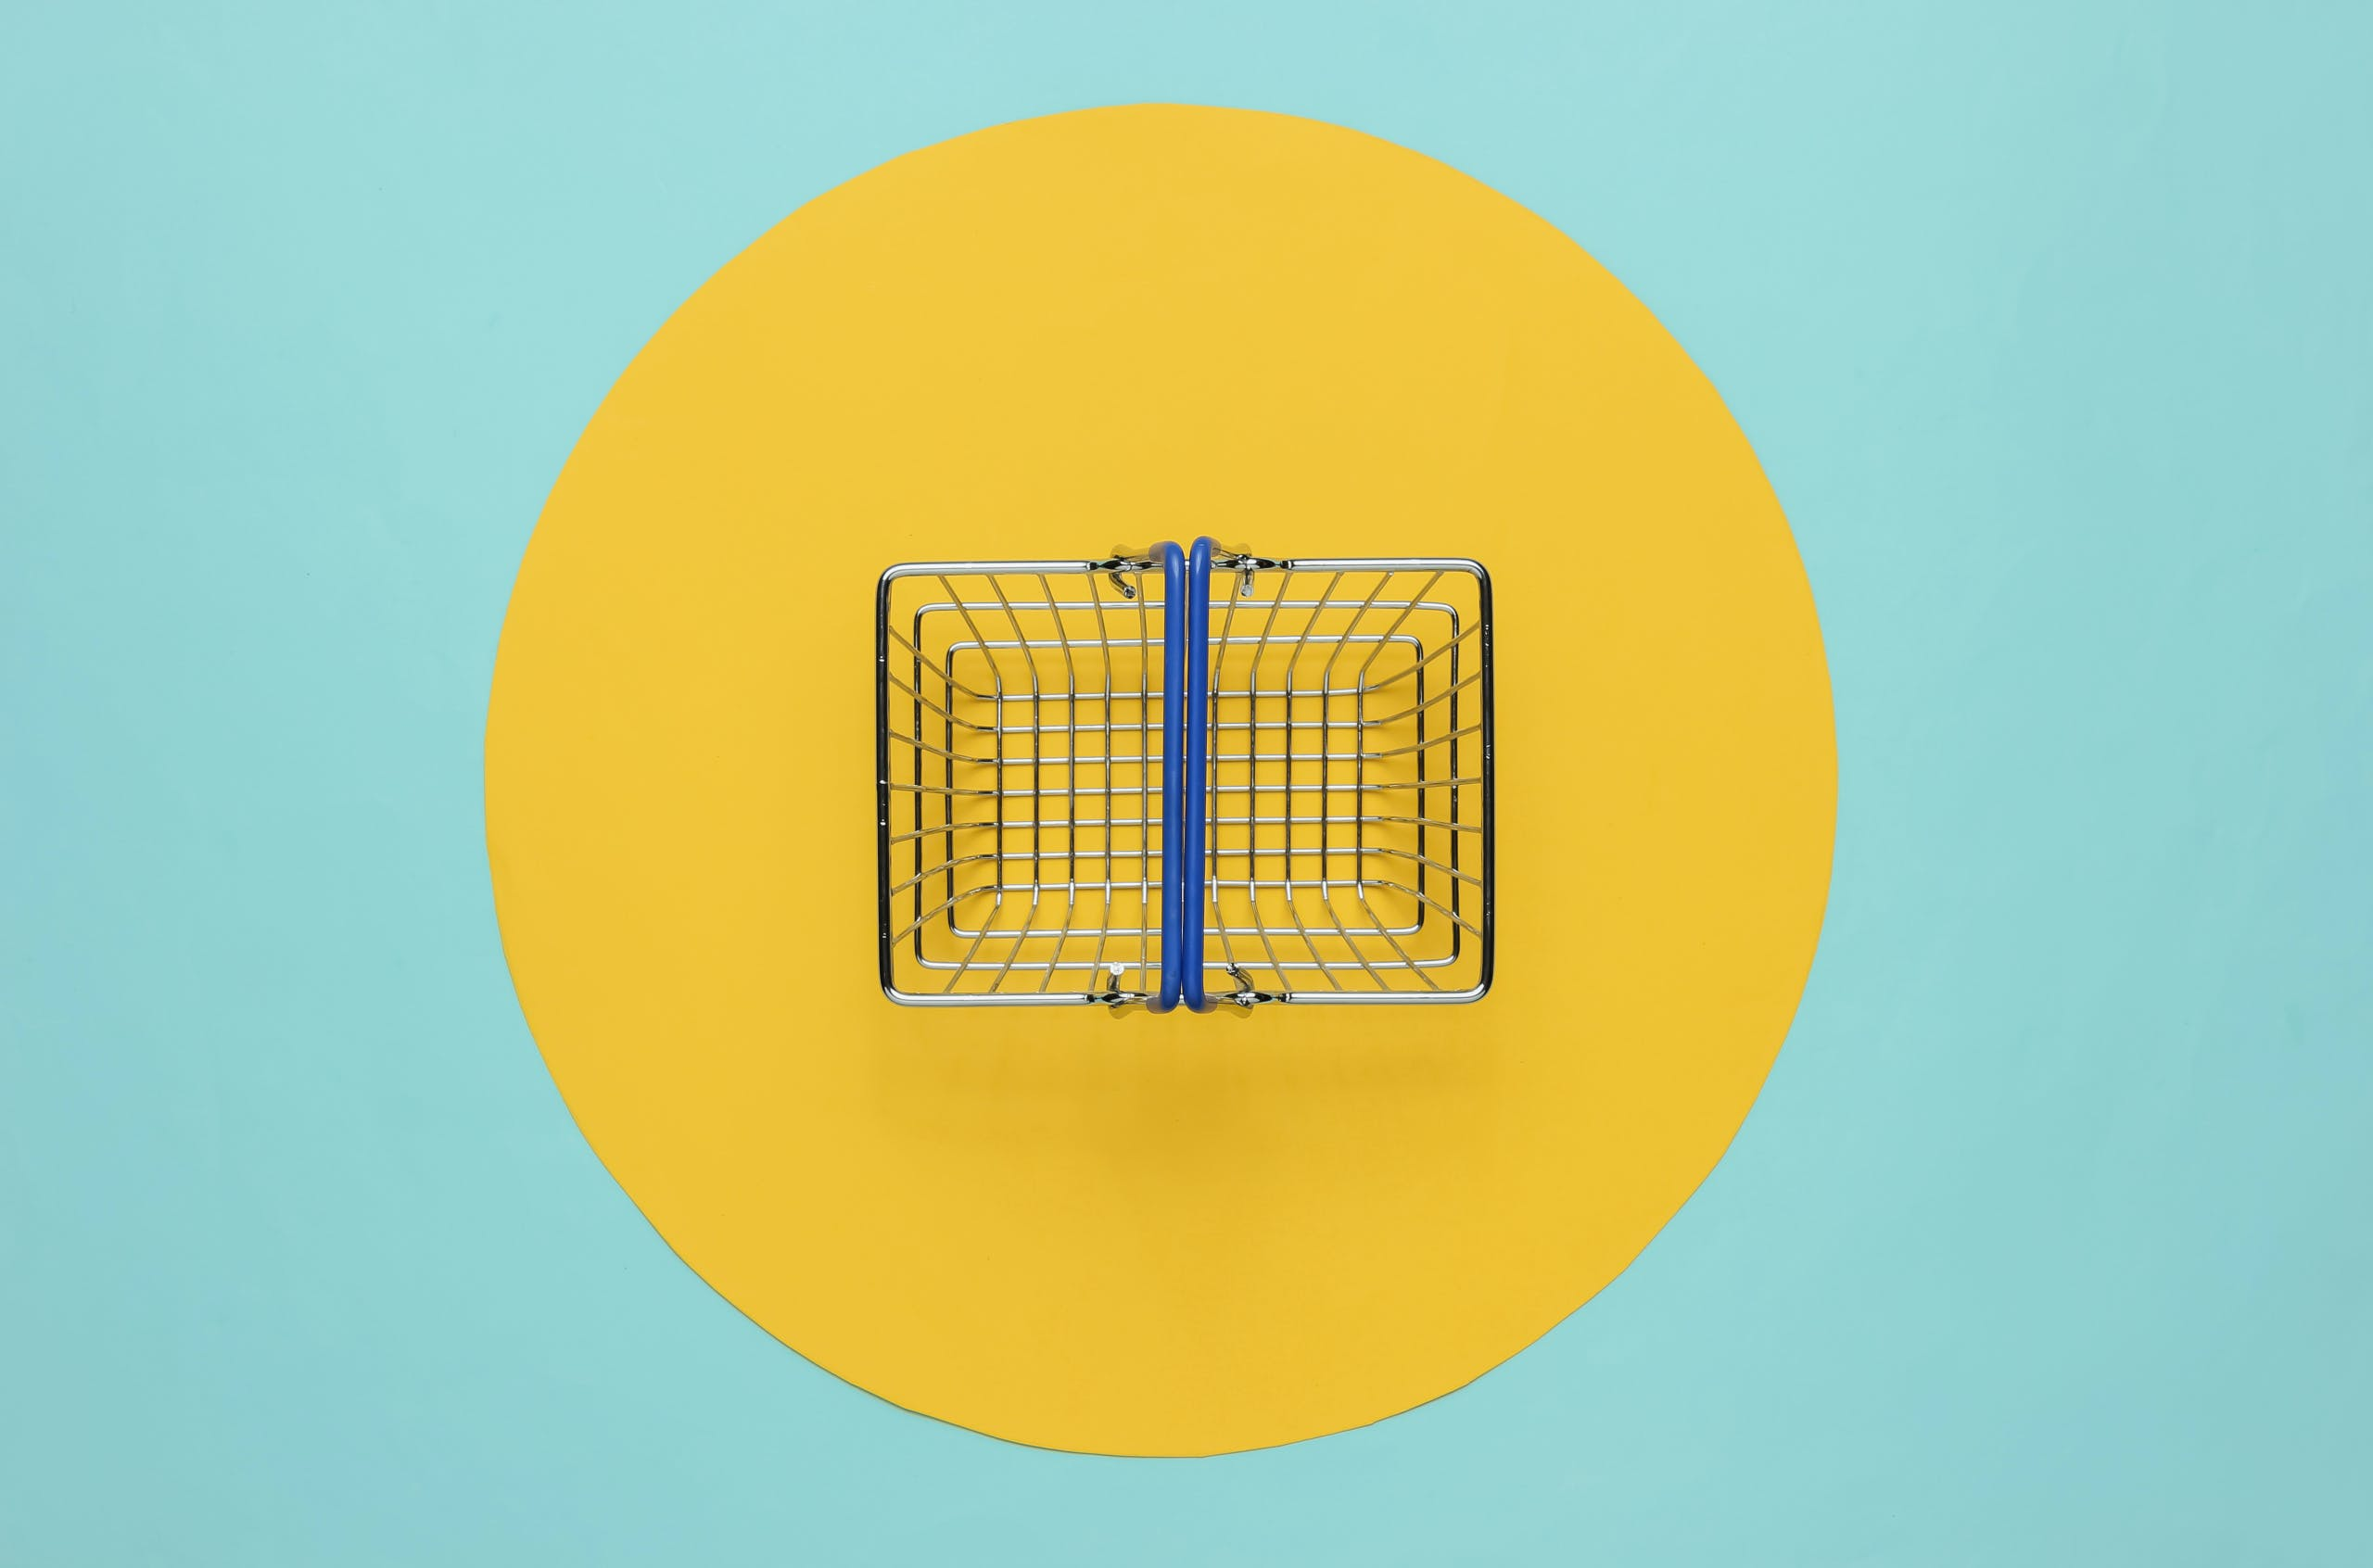 Mini-shopping-basket-on-blue-background-with-yellow-circle-scaled